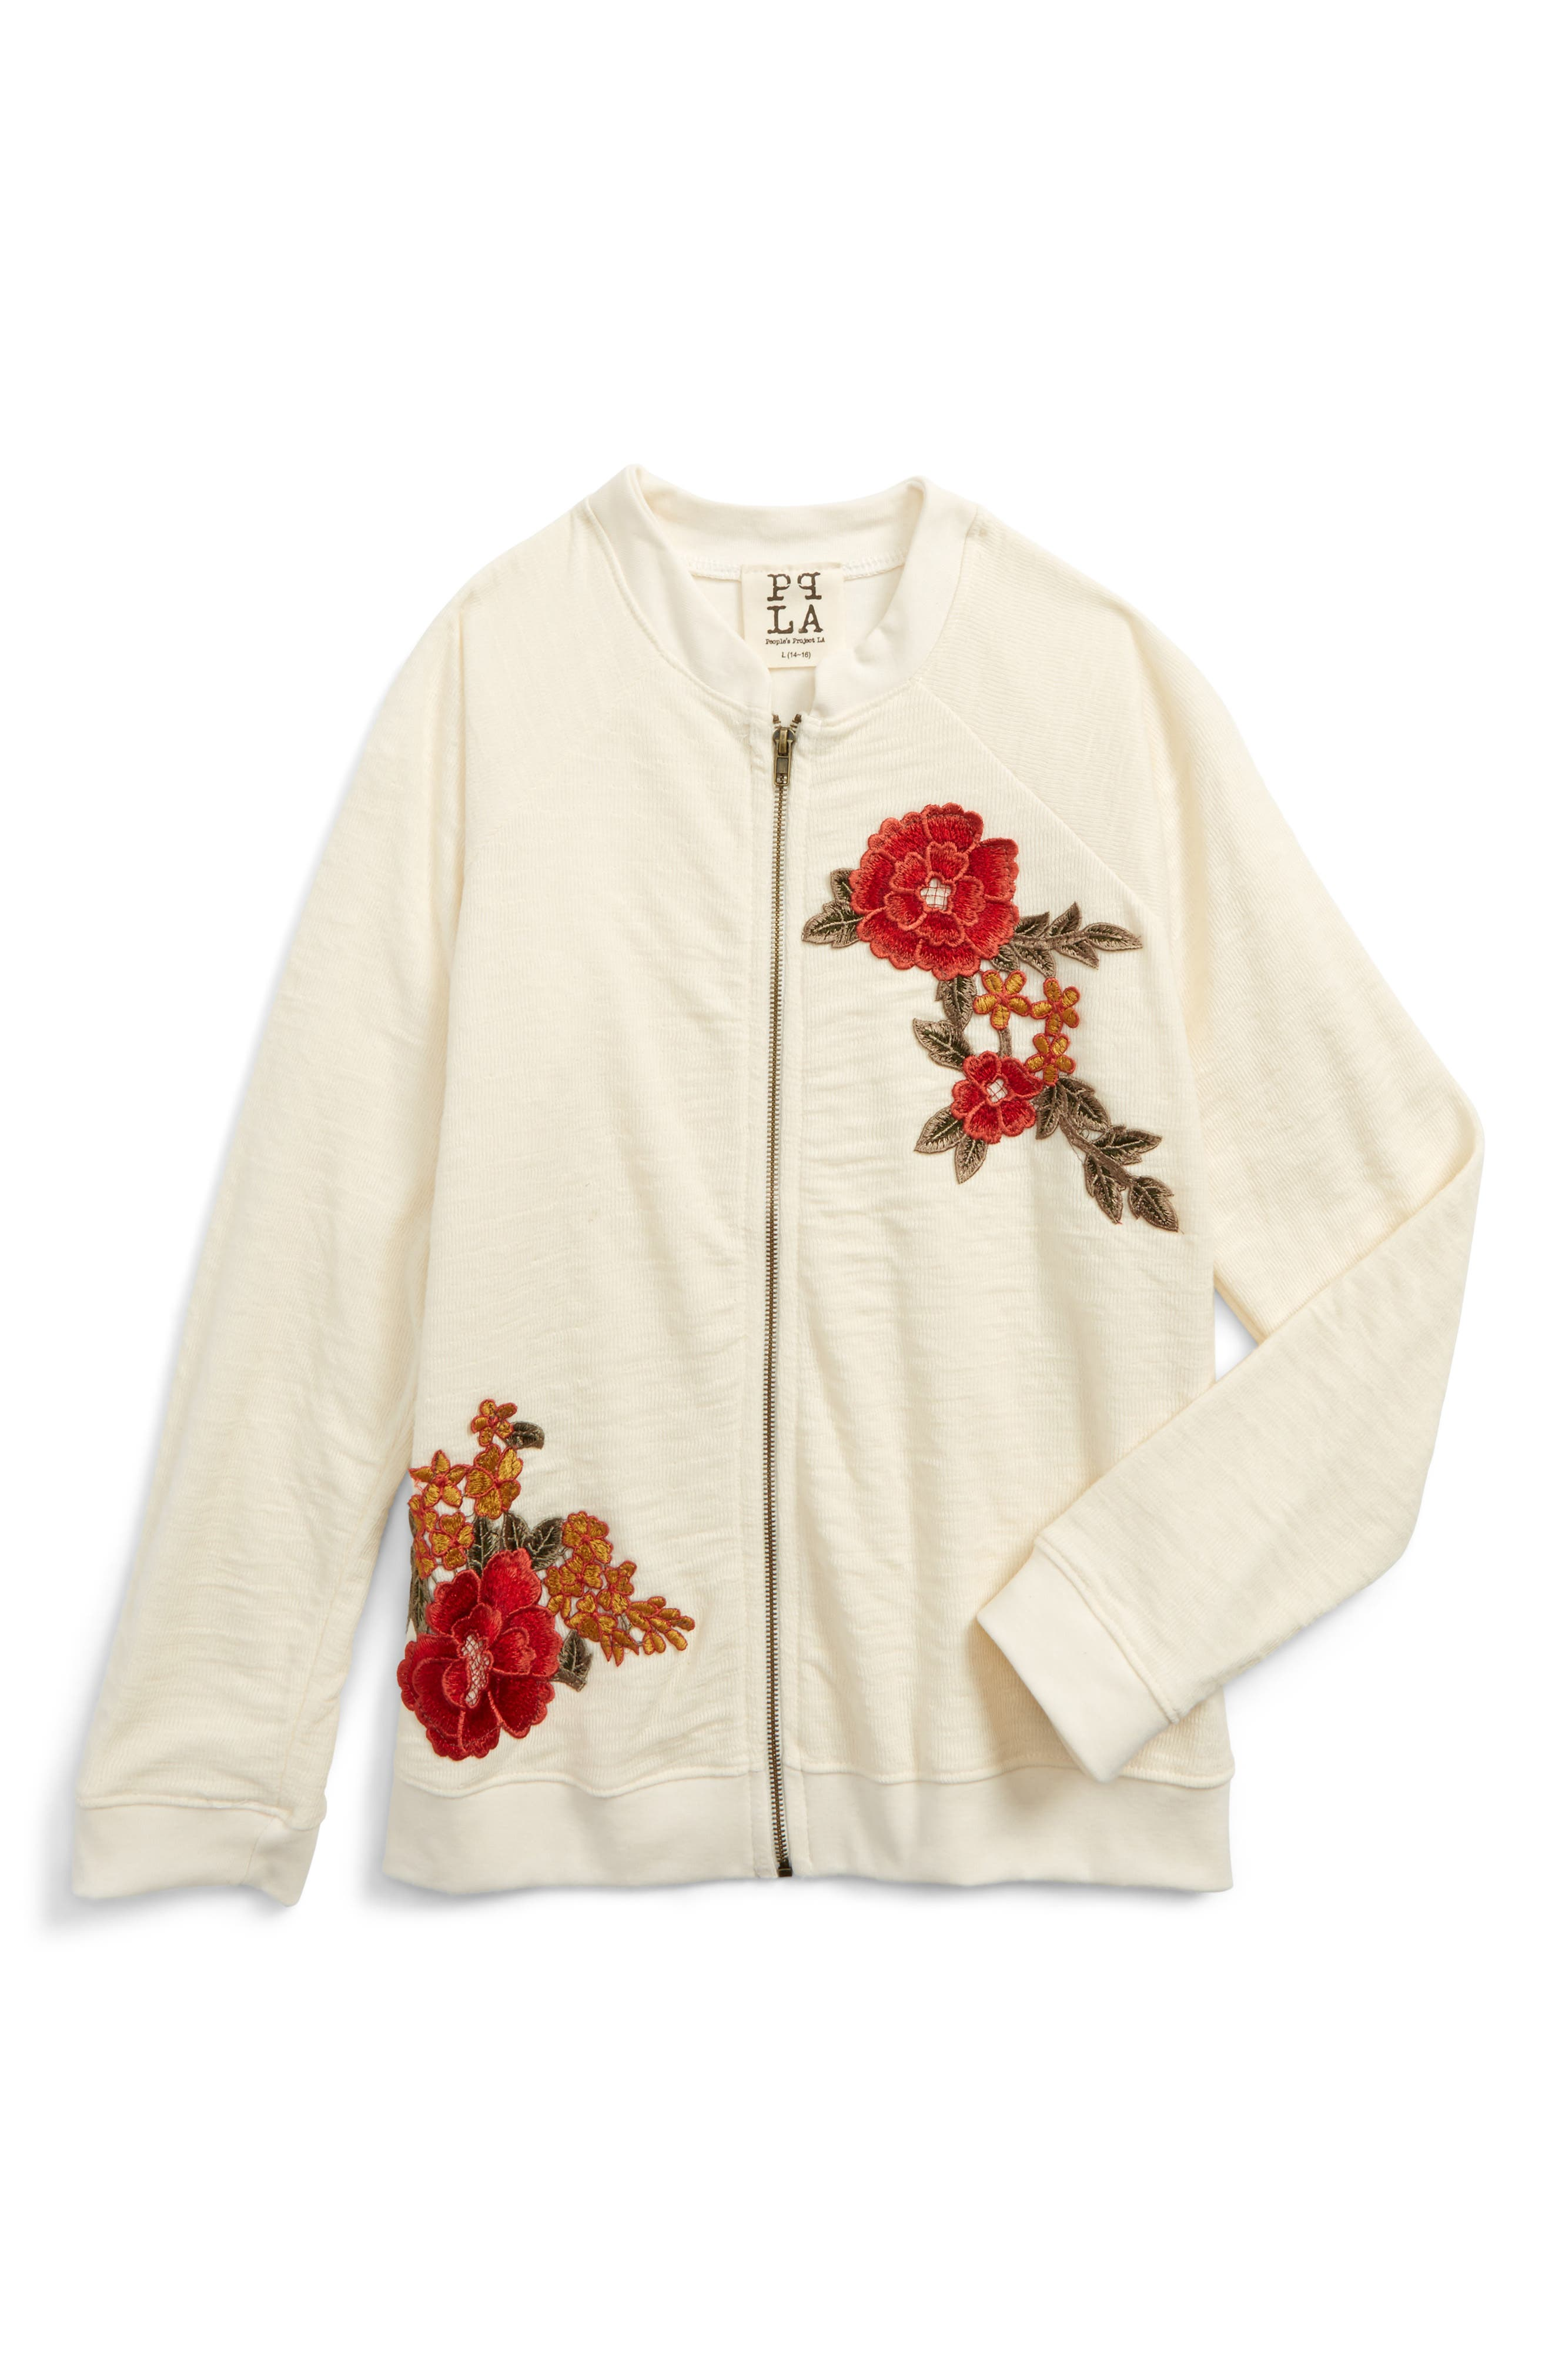 Main Image - PPLA Floral Appliqué Knit Jacket (Big Girls)